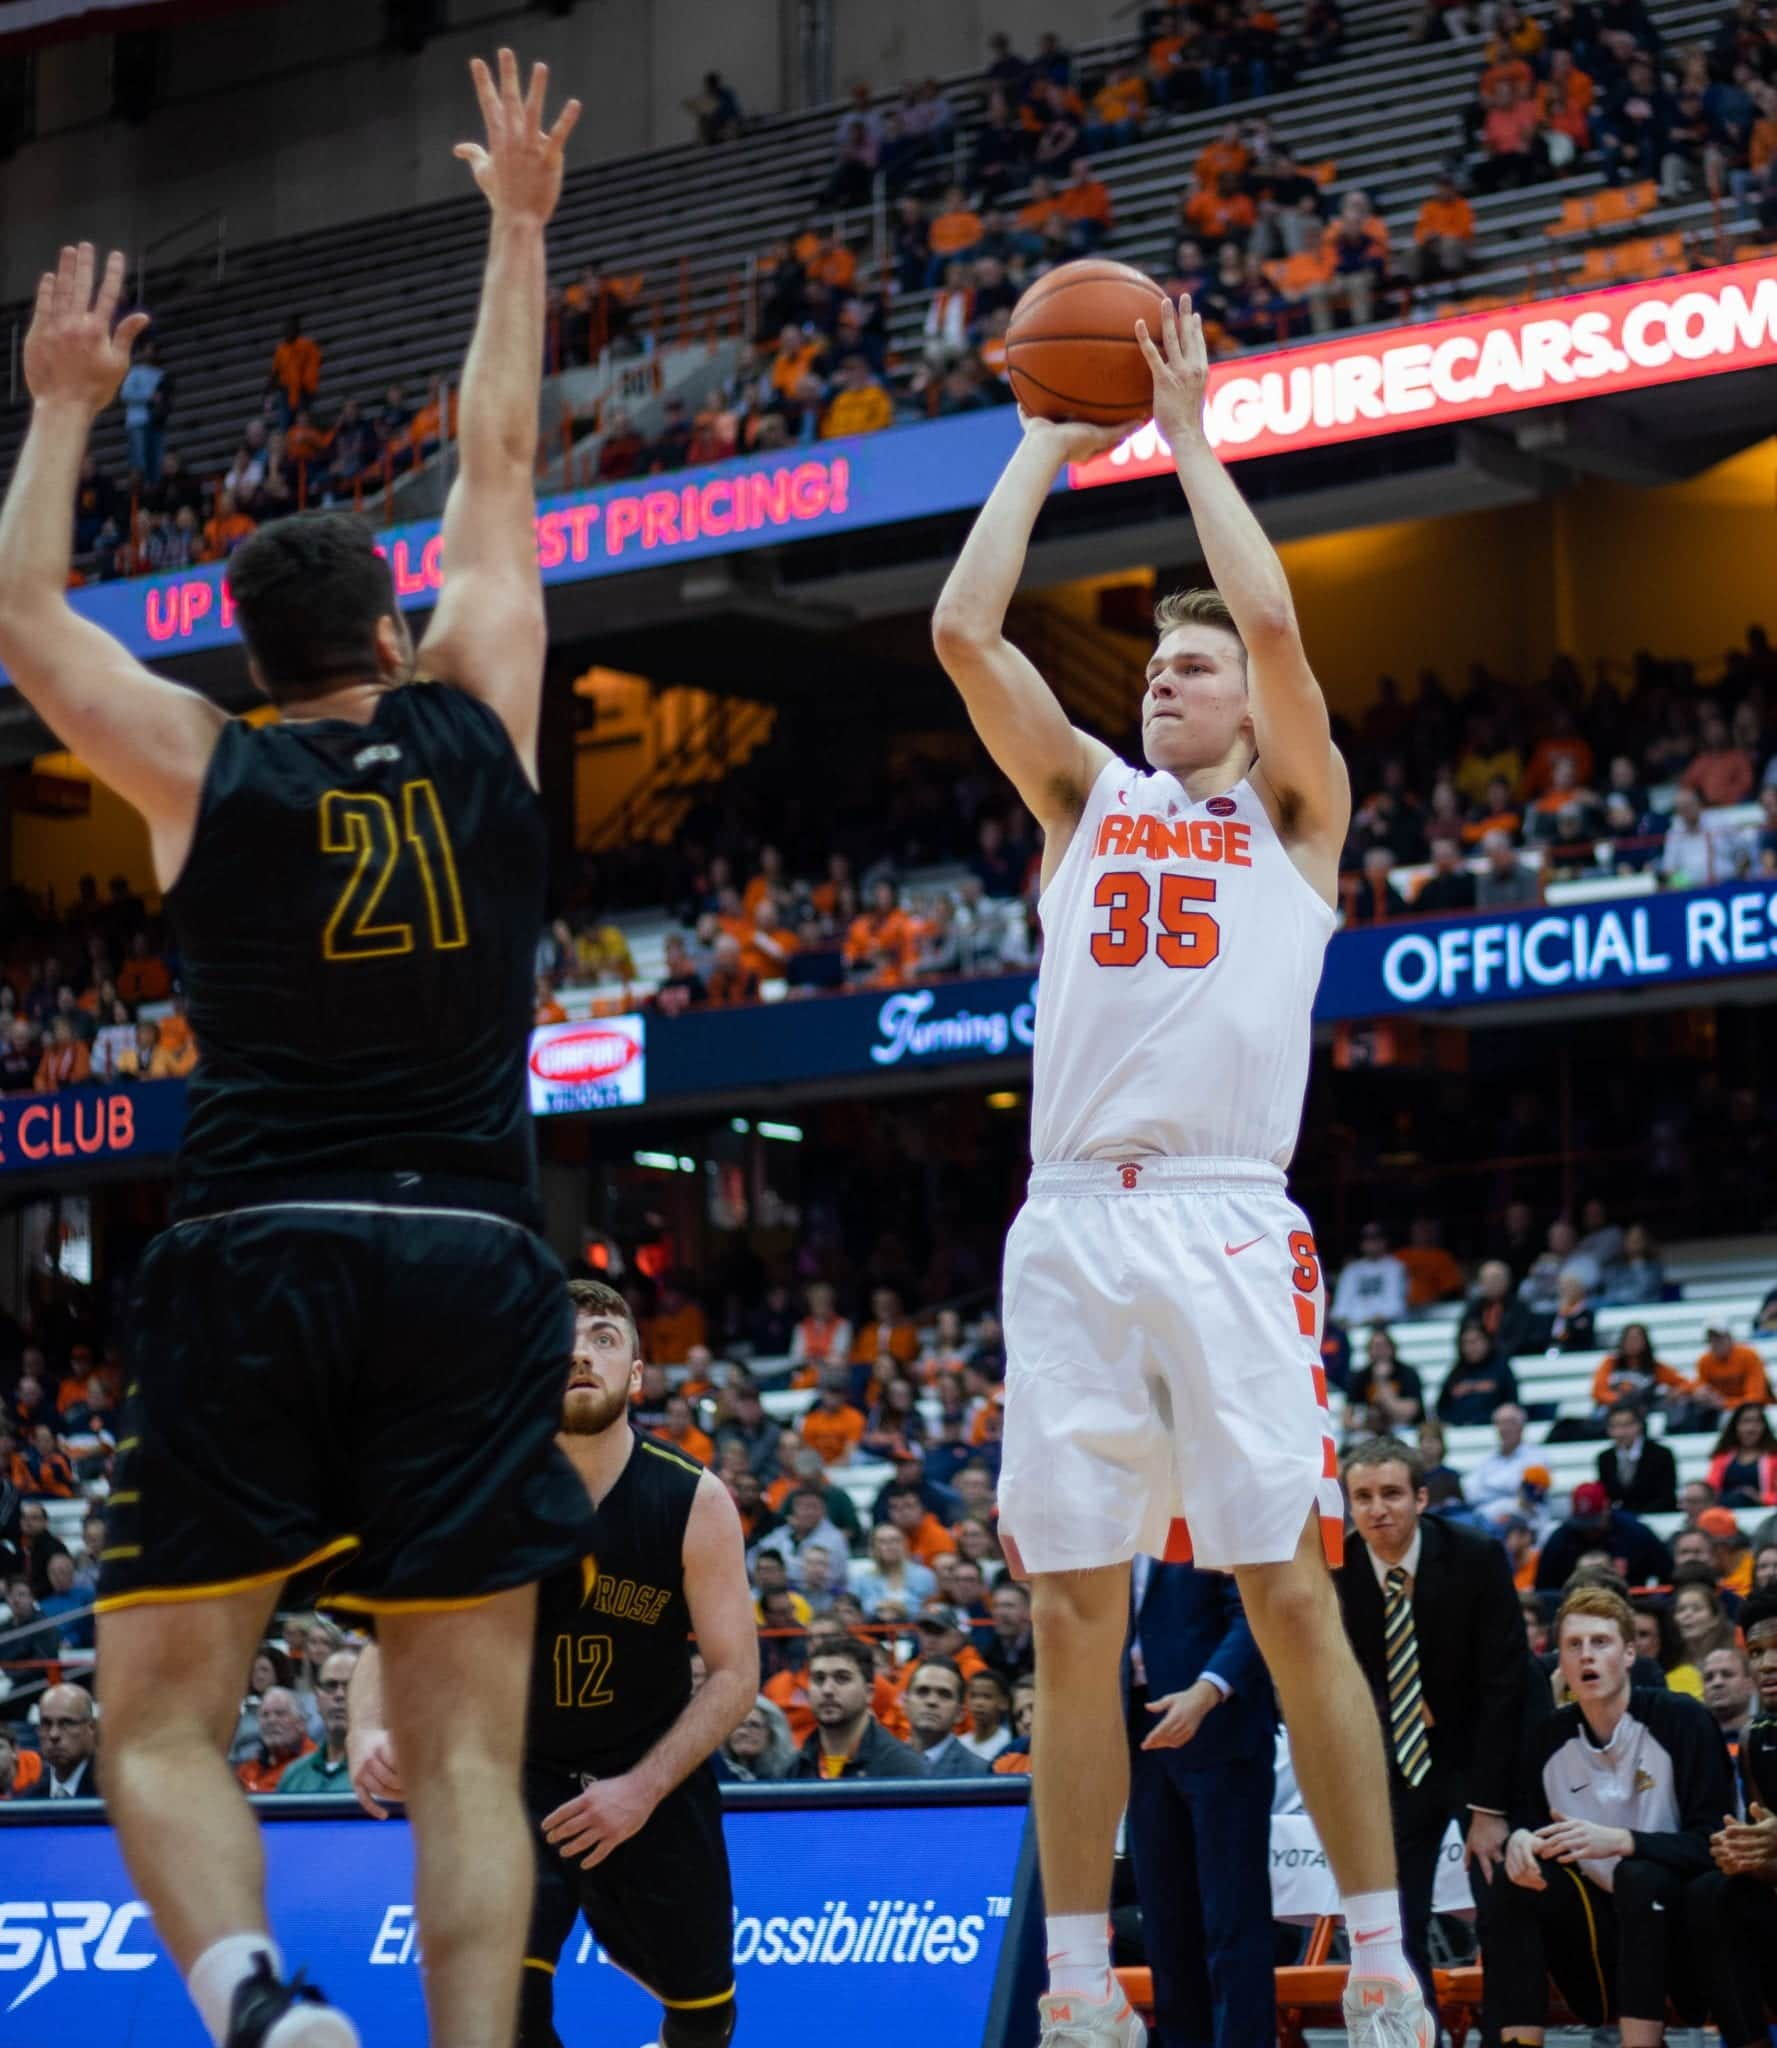 Buddy Boeheim shoots over a Saint Rose defender. Boeheim finished with 19 points in his Syracuse debut.